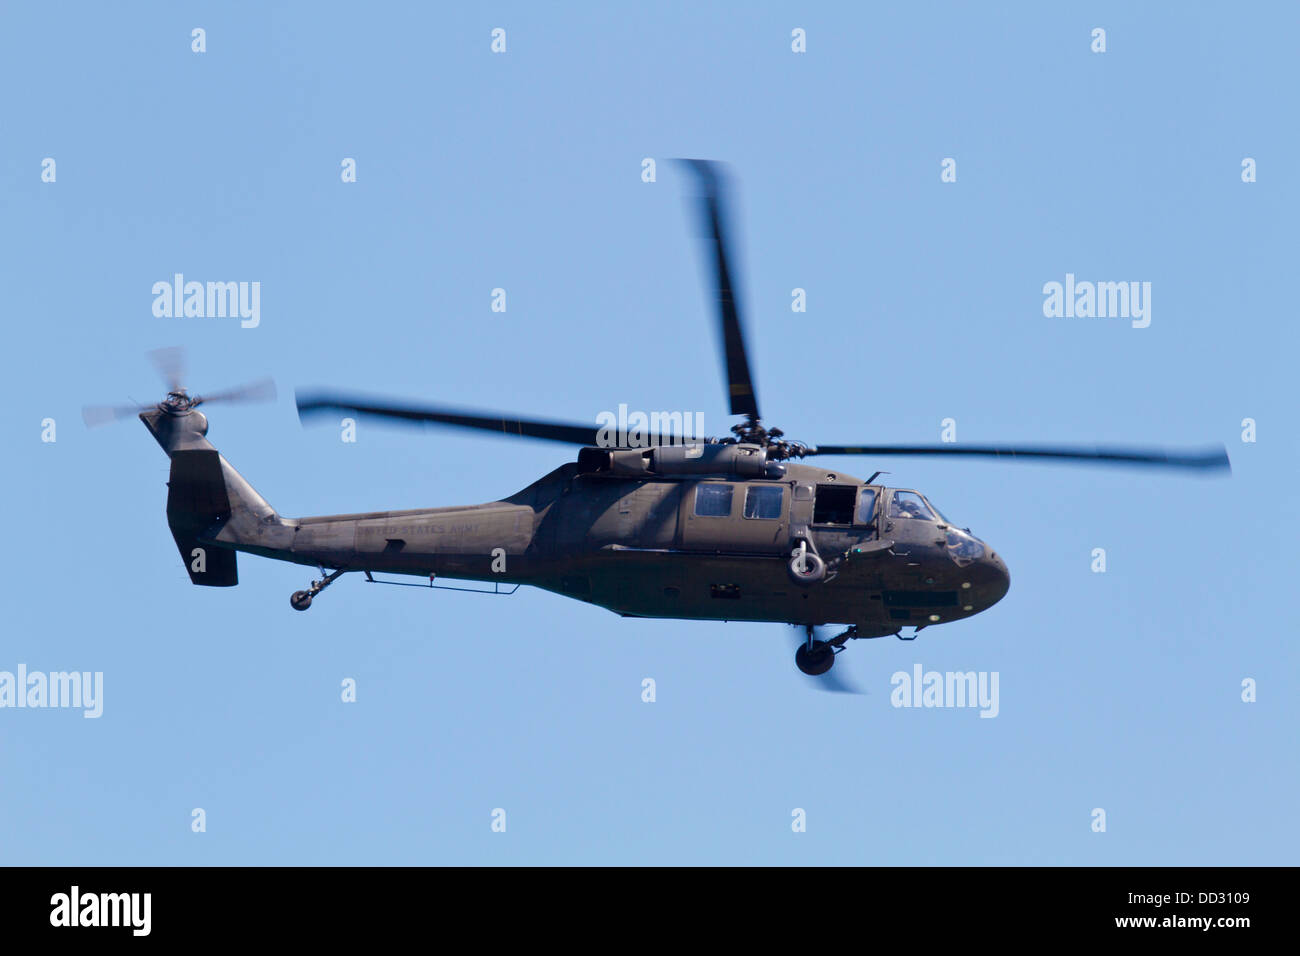 A U.S. army Sikorsky UH-60 Blackhawk helicopter Stock Photo